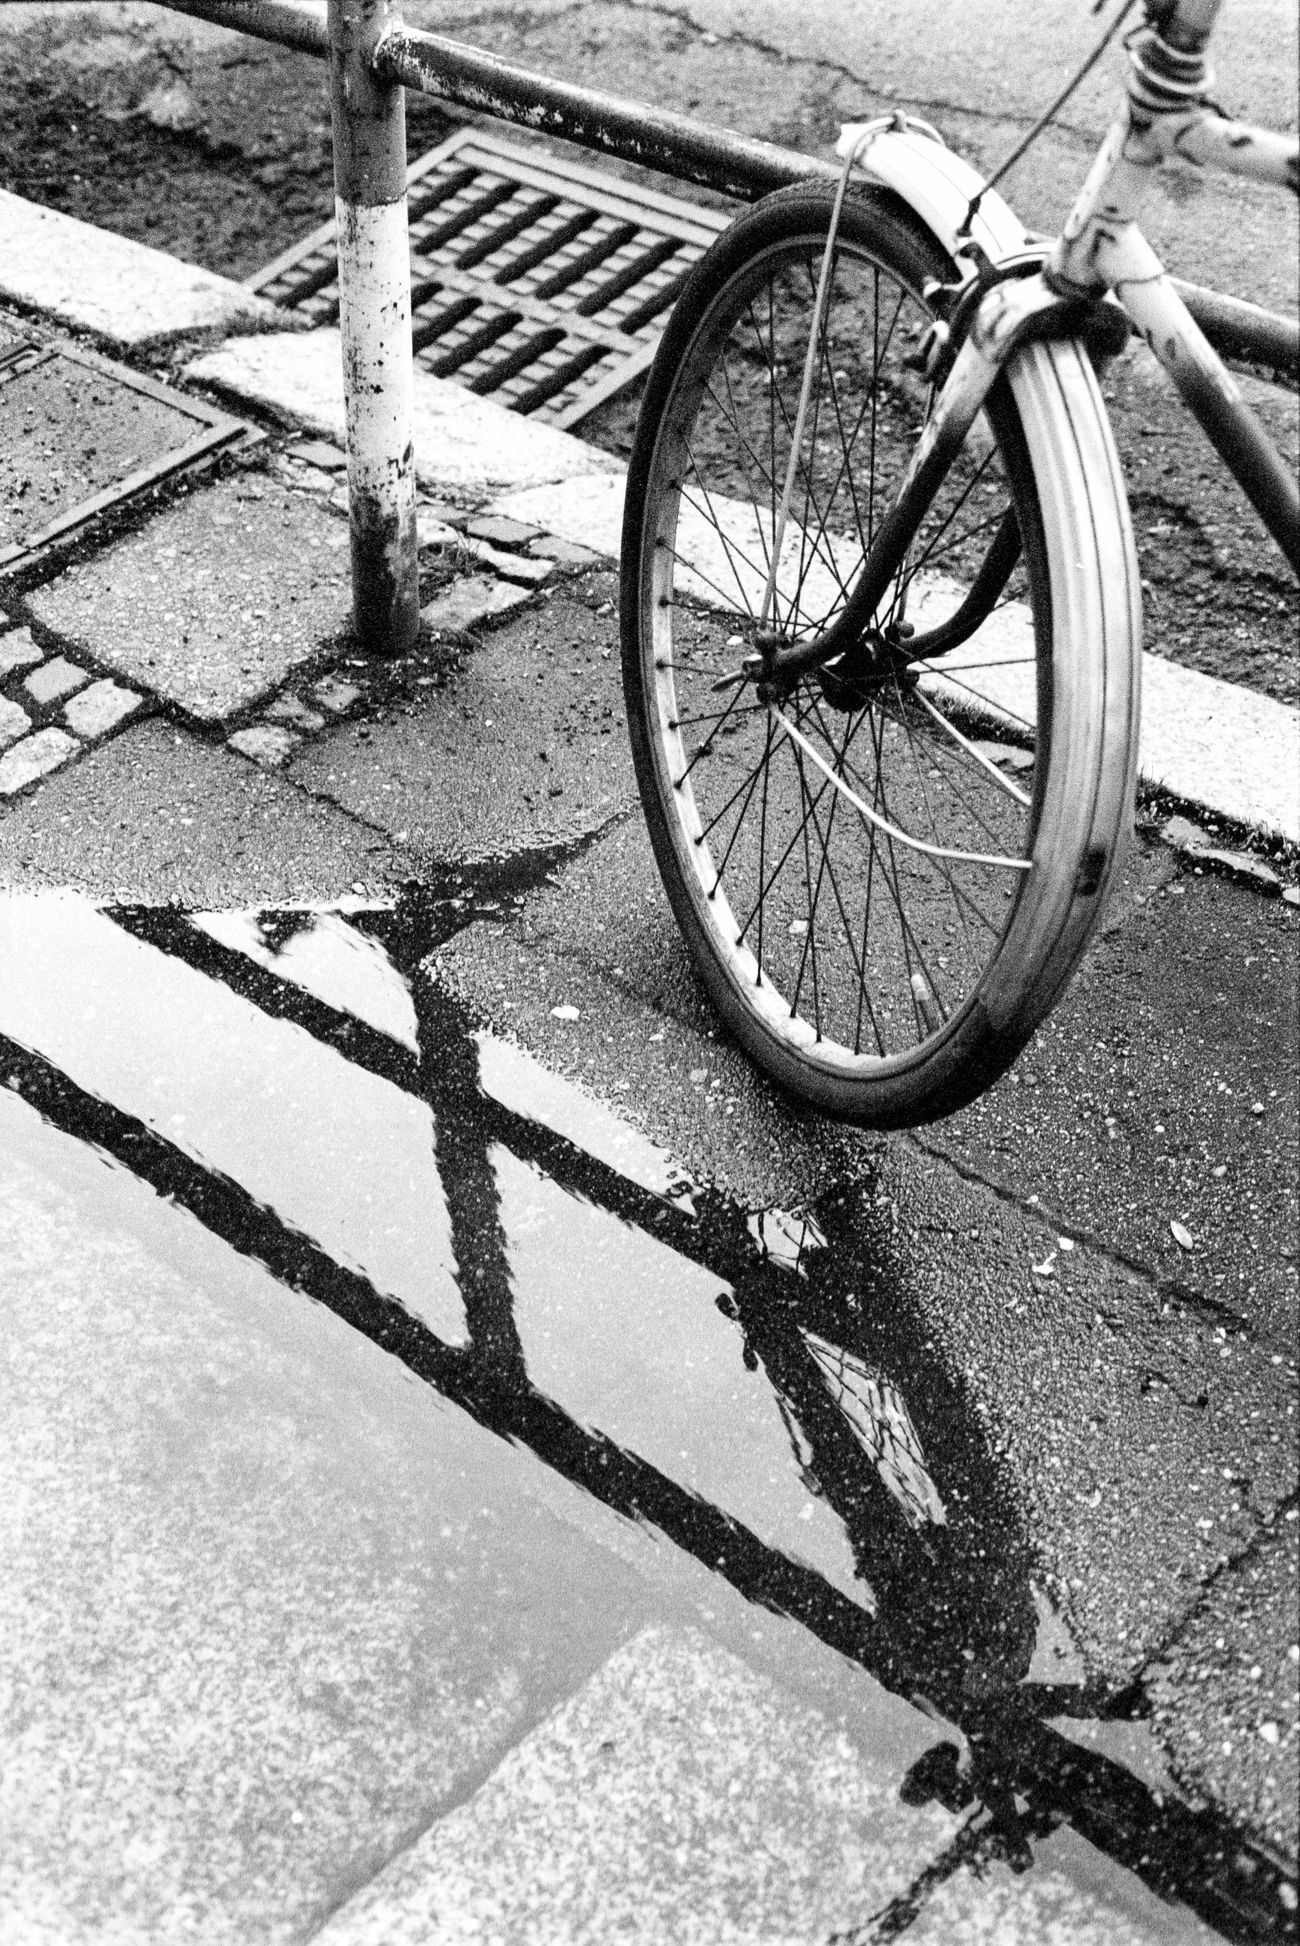 Location: Konsulstraße Canon EOS 50E | Superpan 200 -> 400 | D-76 Black And White Blackandwhite Bycicle Canon EOS 50E EyeEm Best Shots - Black + White Kodak D-76 Monochrome Rollei Superpan 200